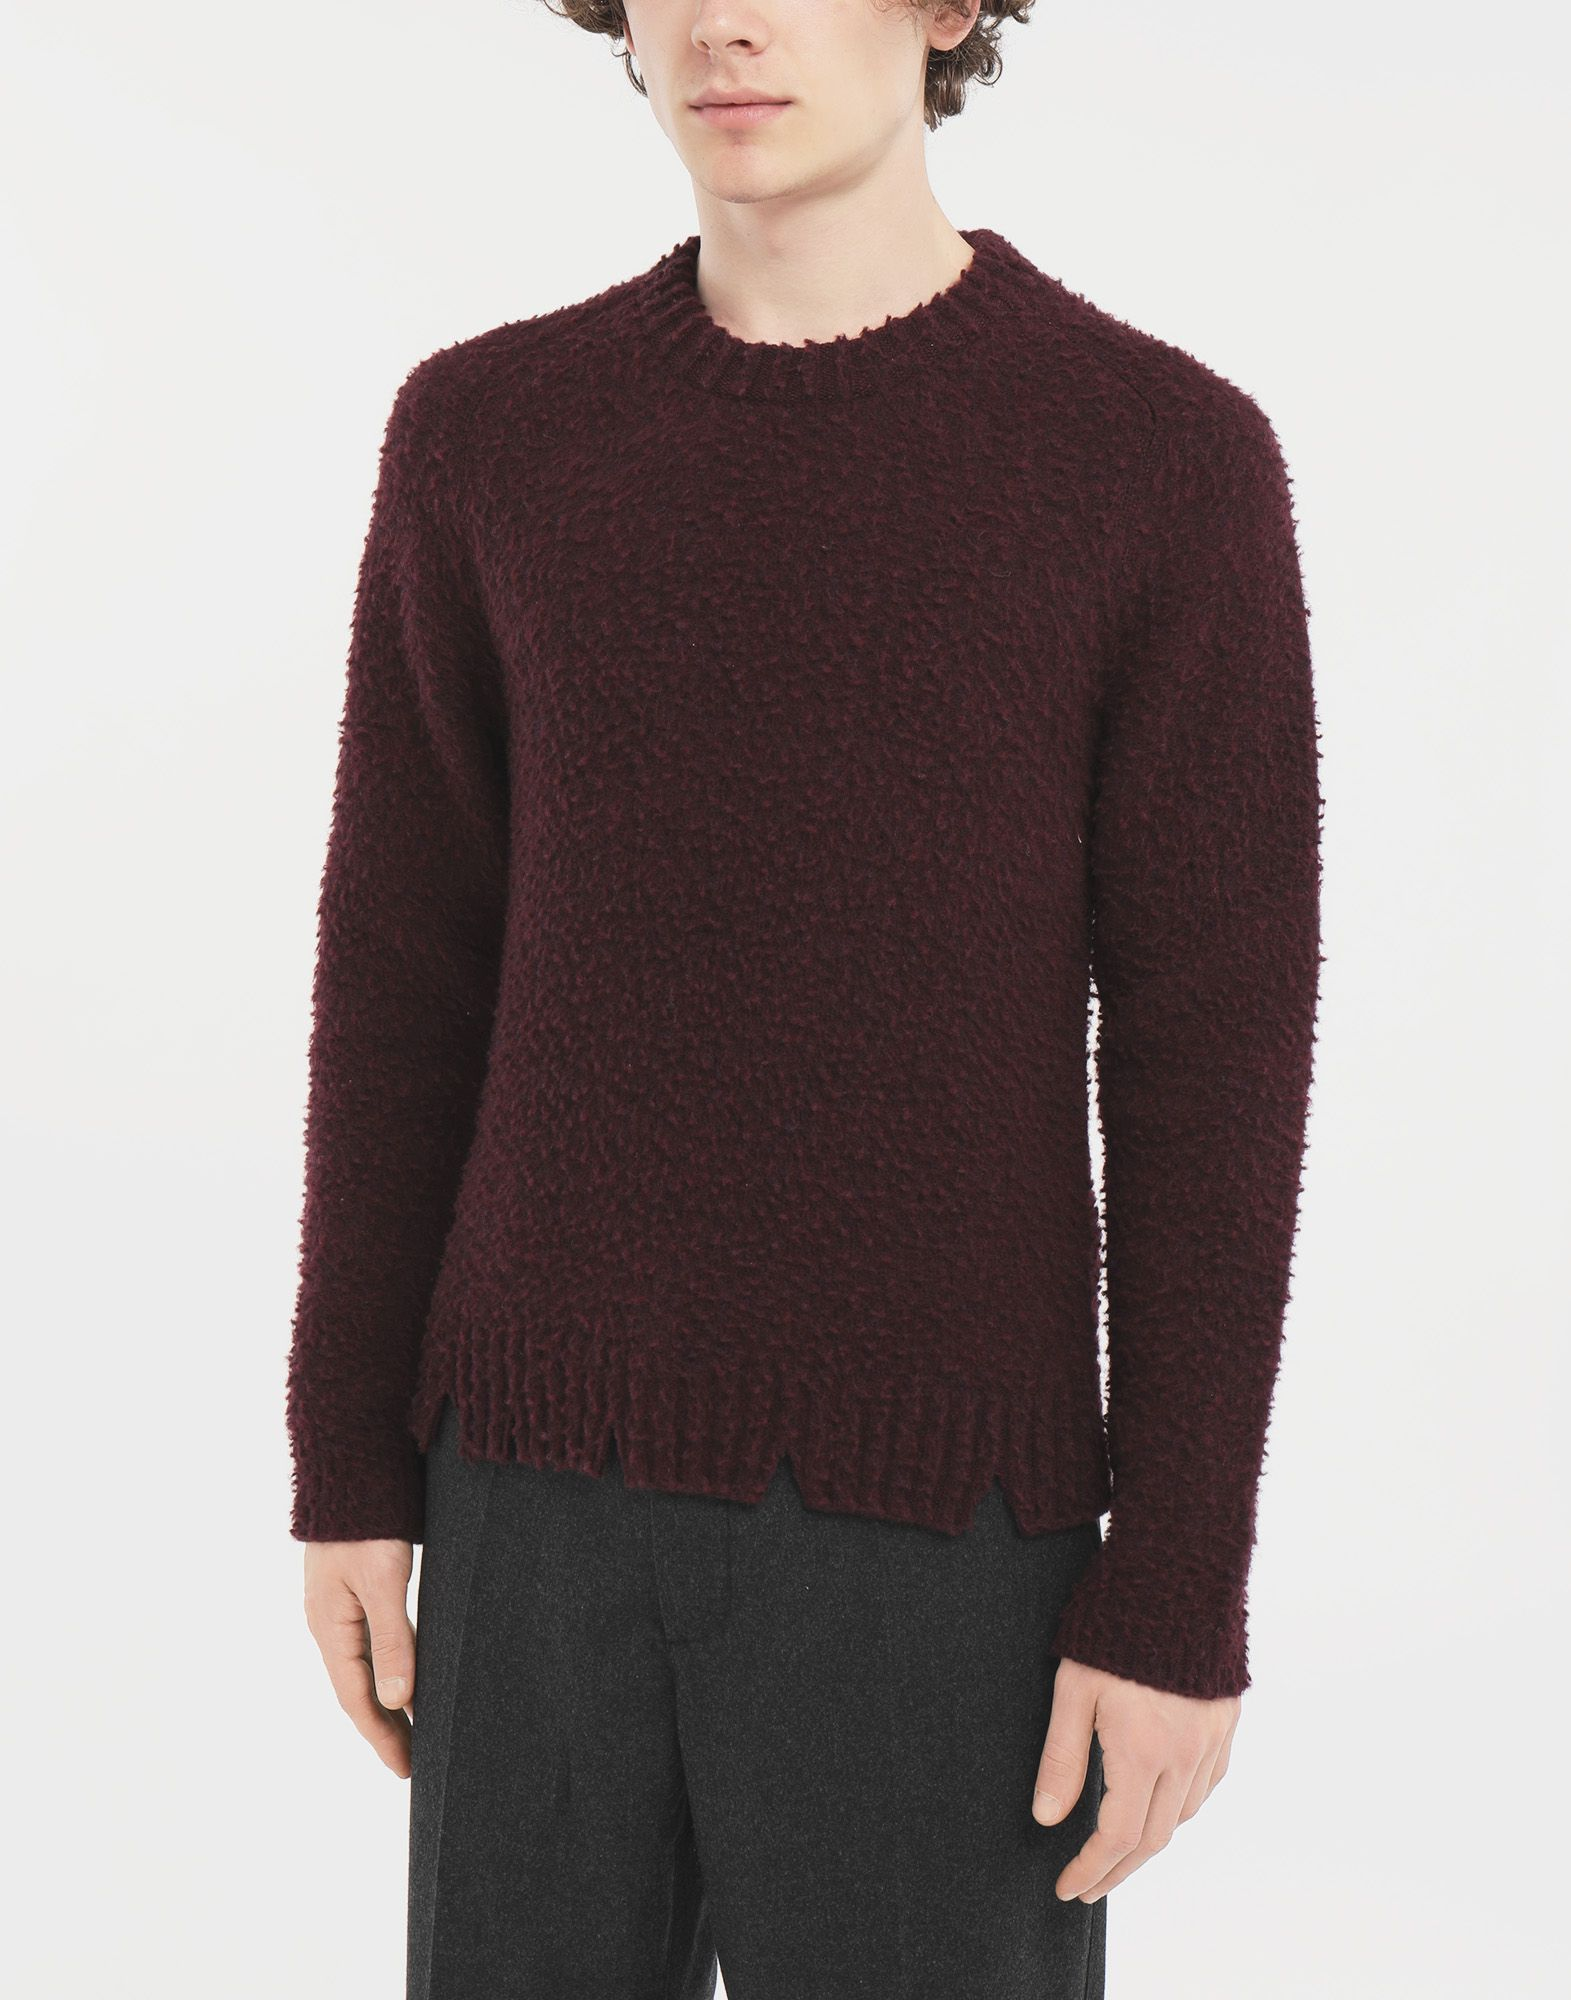 MAISON MARGIELA Destroyed sweater Crewneck Man r